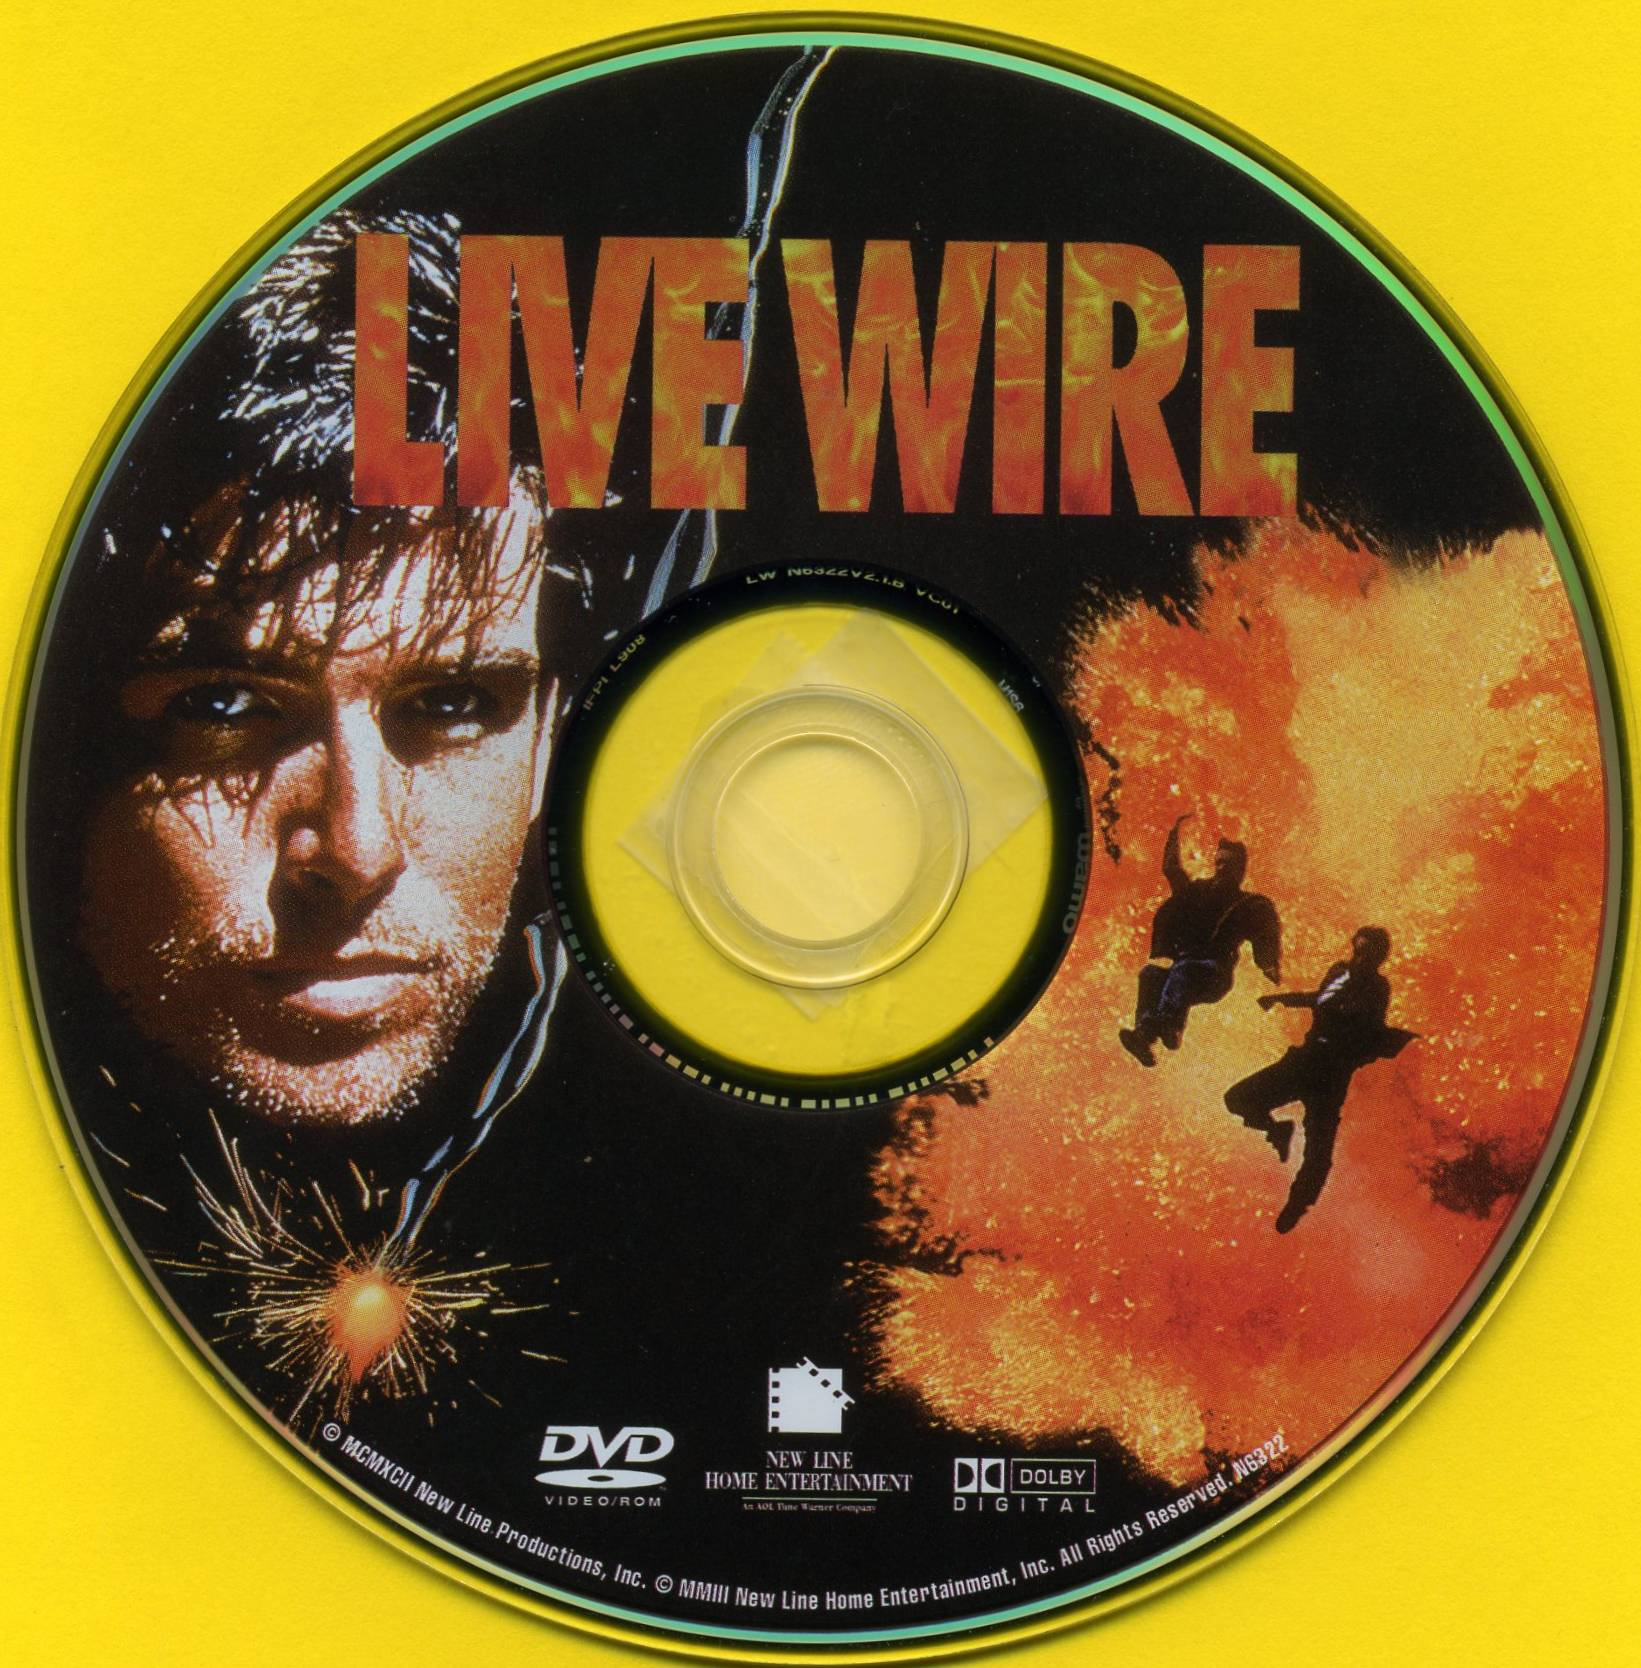 COVERS BOX SK ::: Live Wire (1992) - high quality DVD / Blueray / Movie